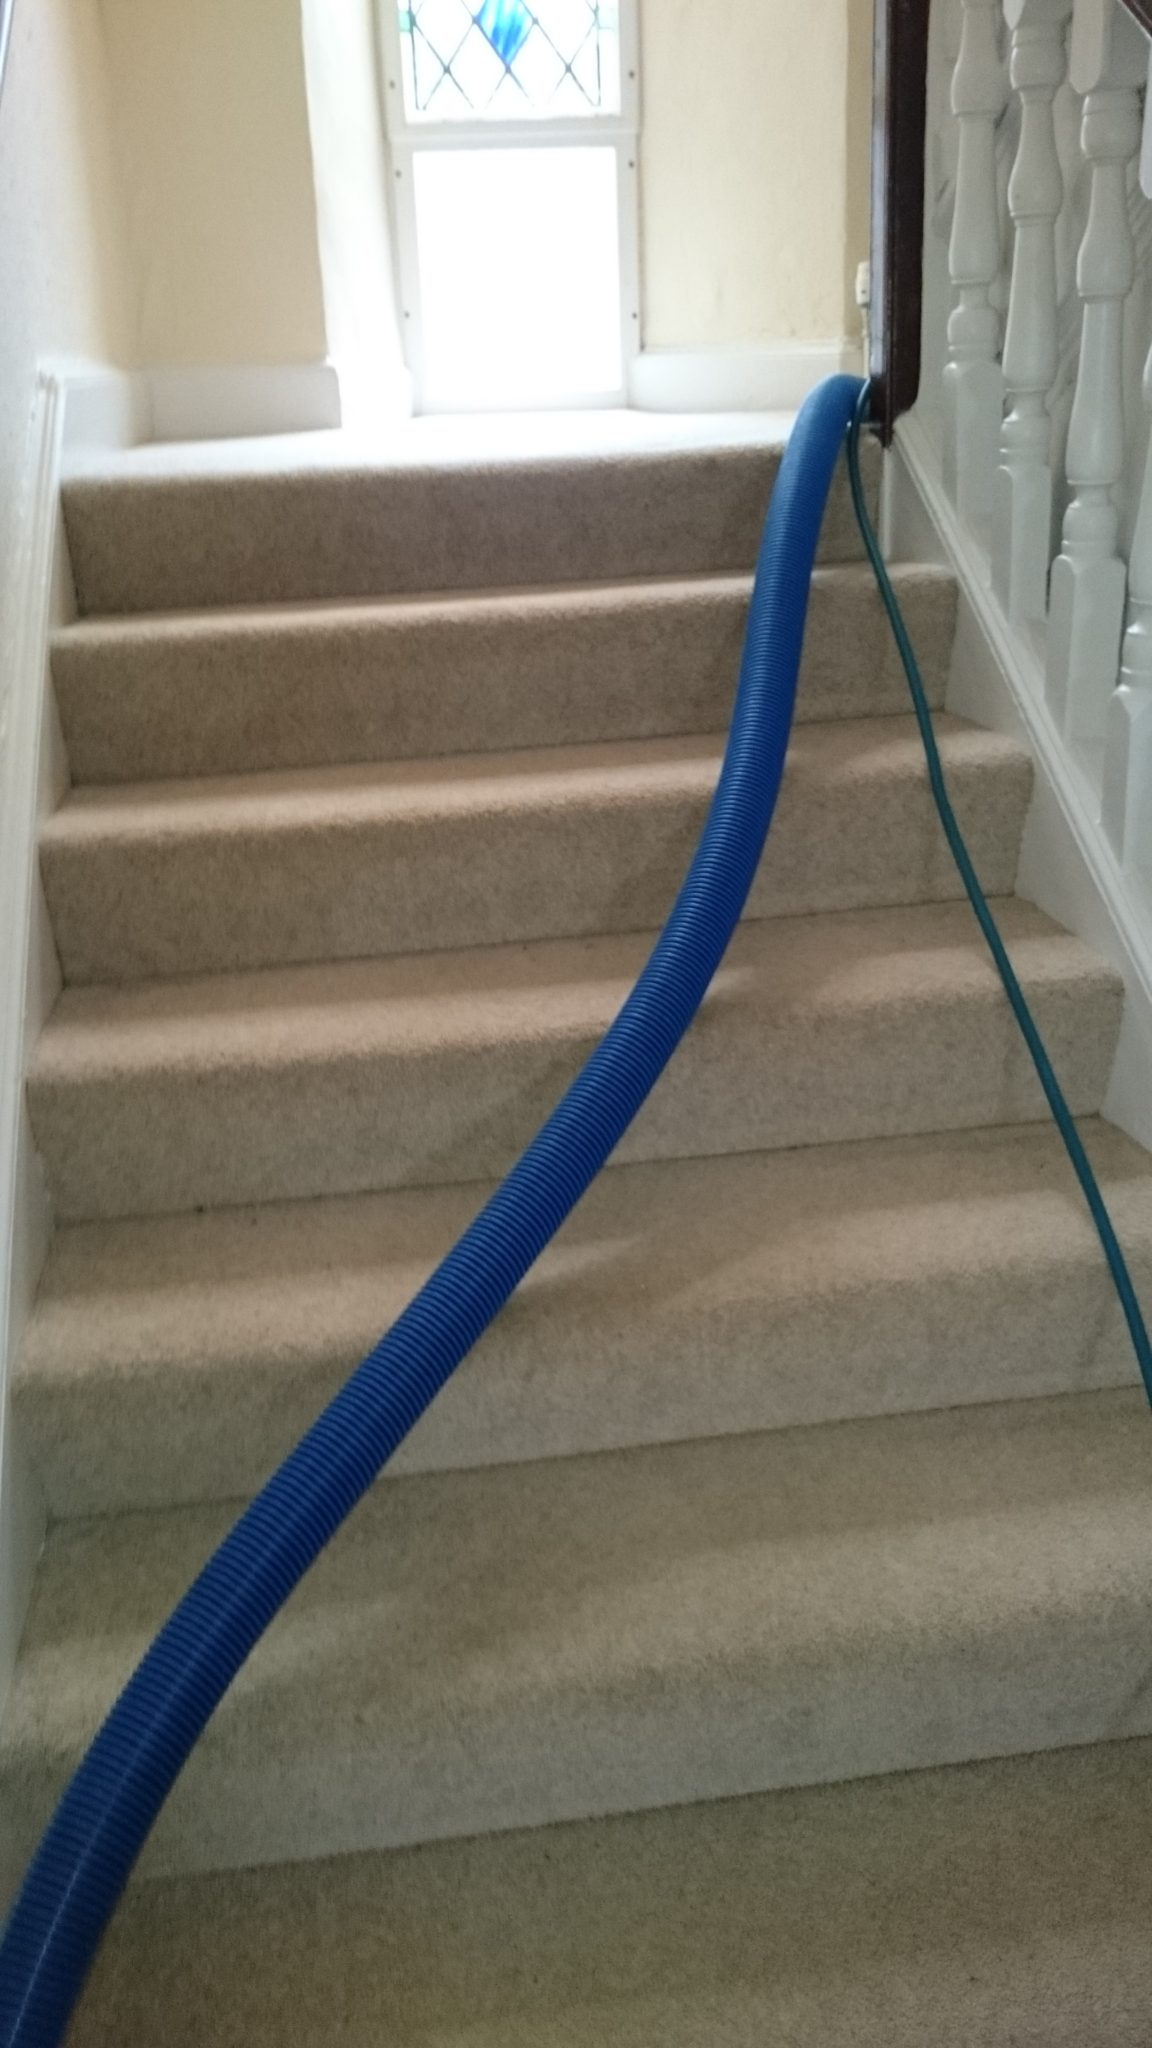 Cleaning carpet steps